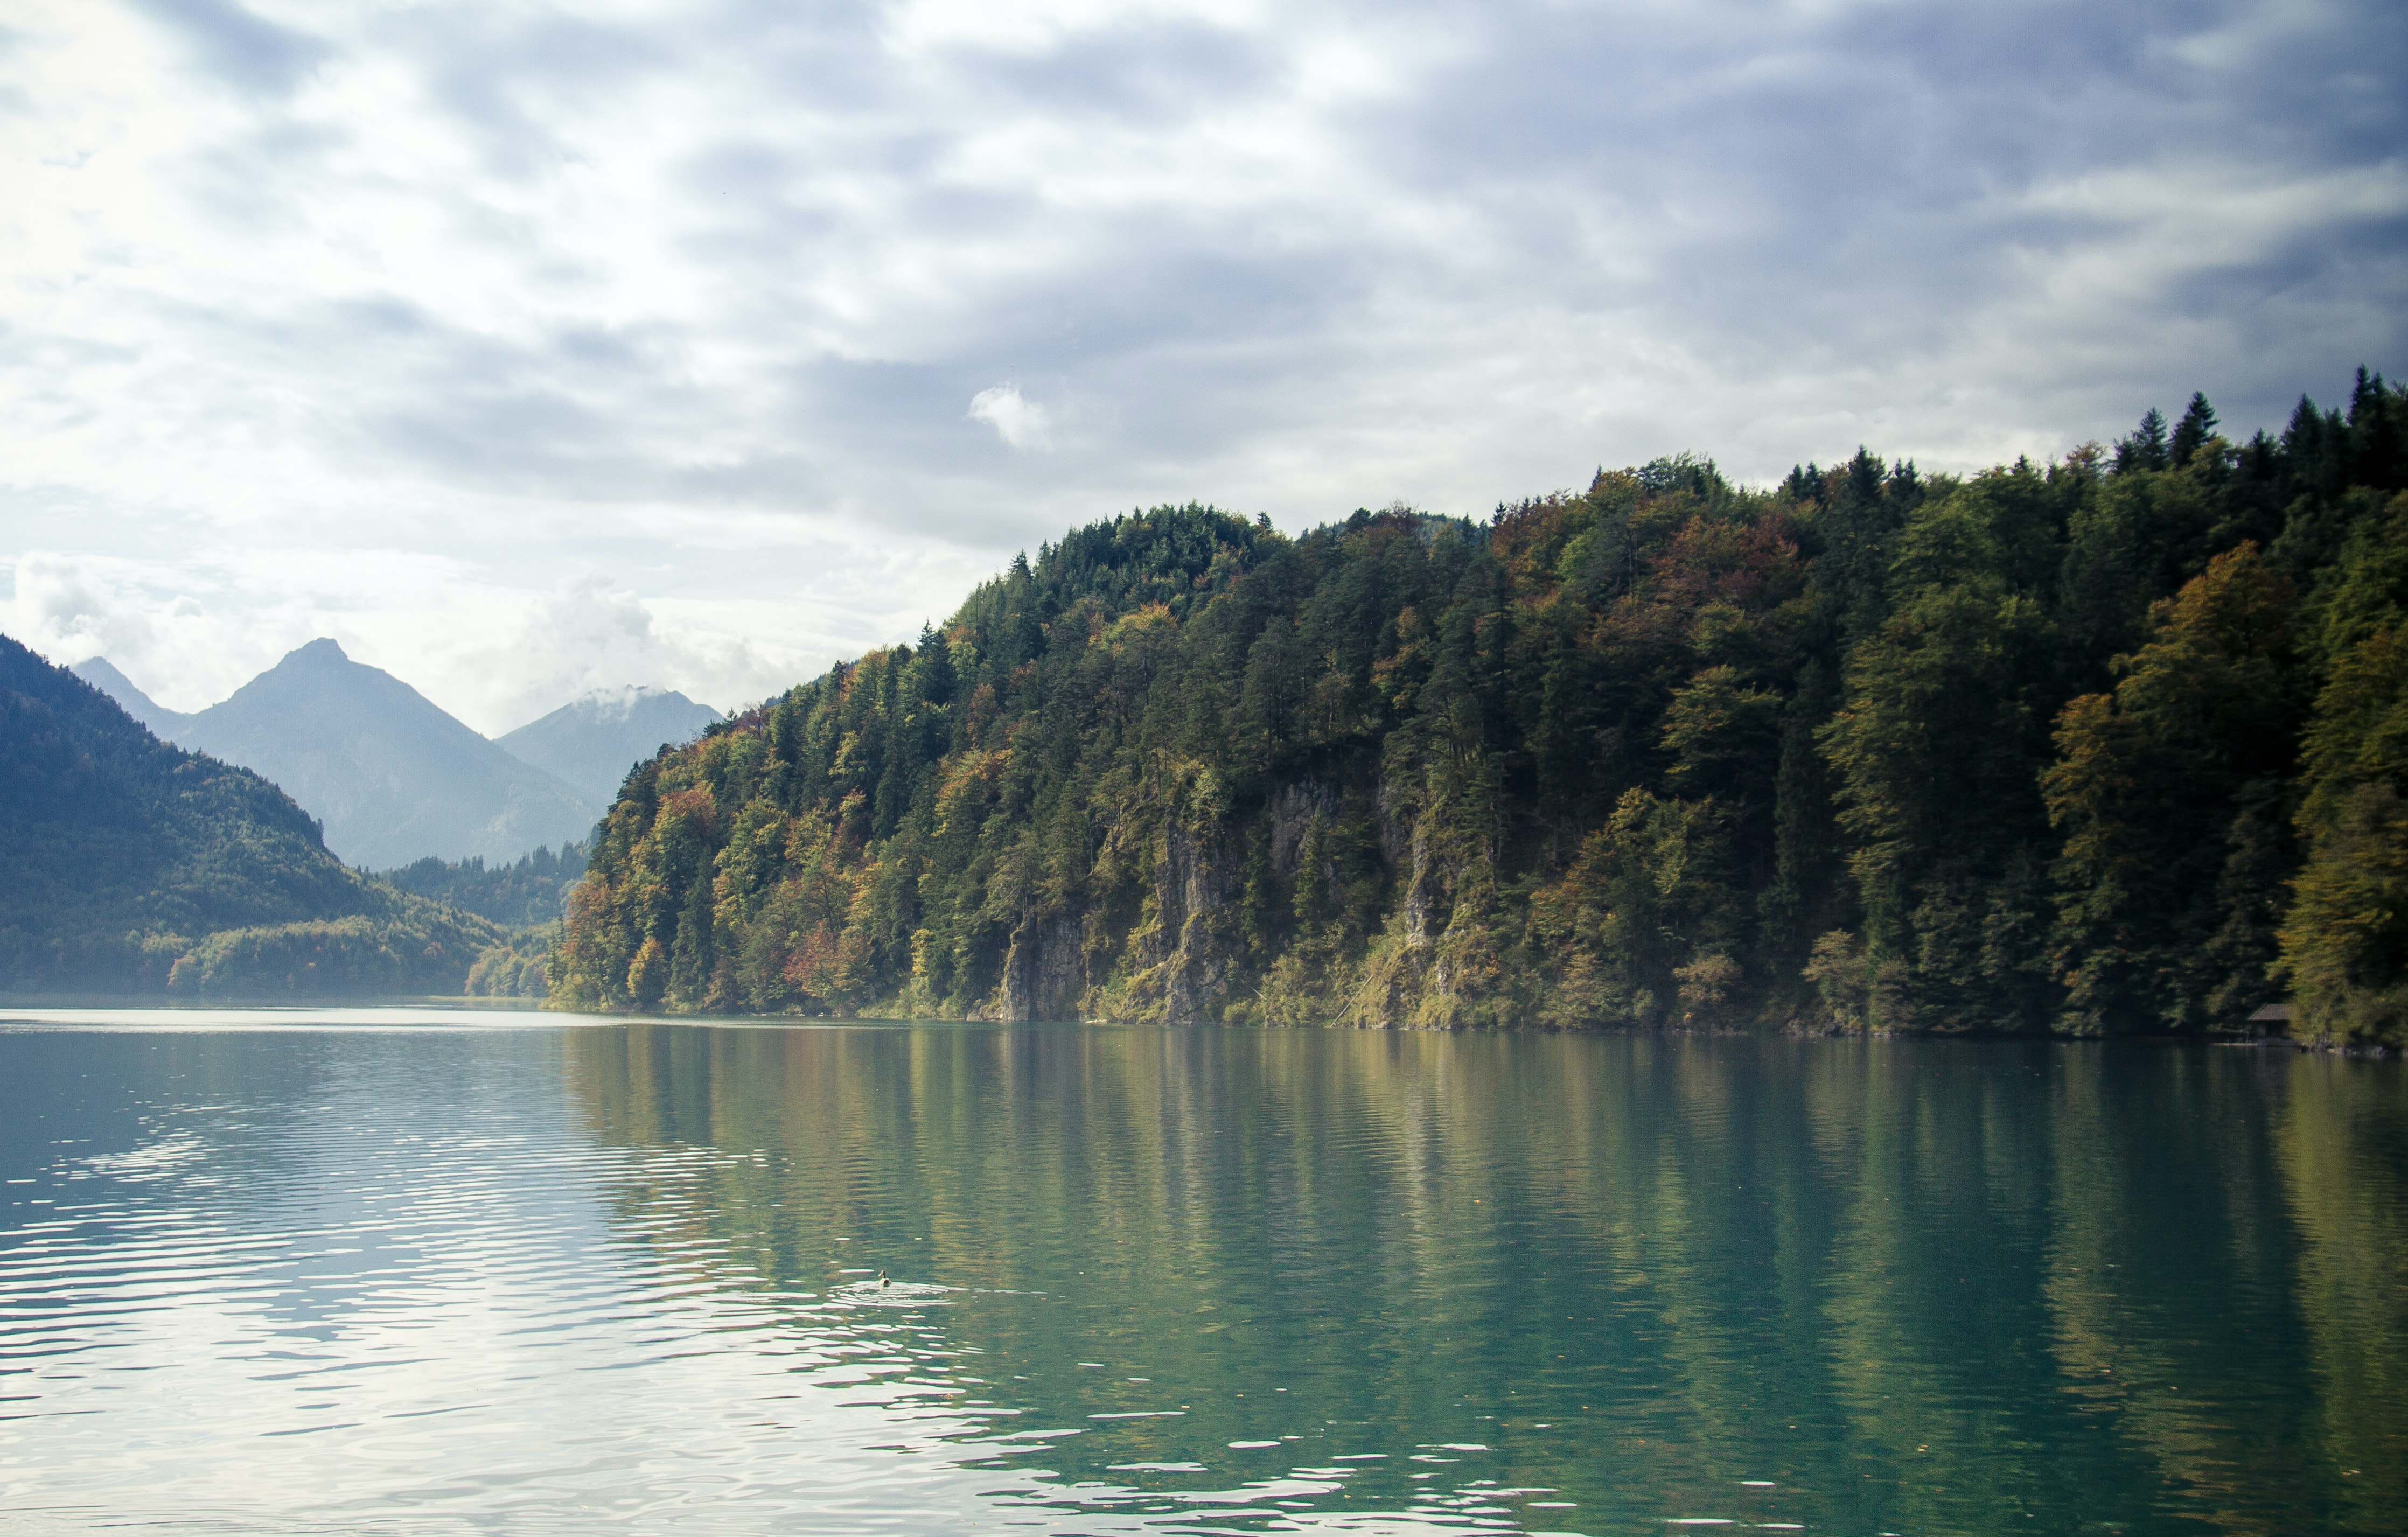 Steep wooded cliffs over a calm lake with mountains on the horizon